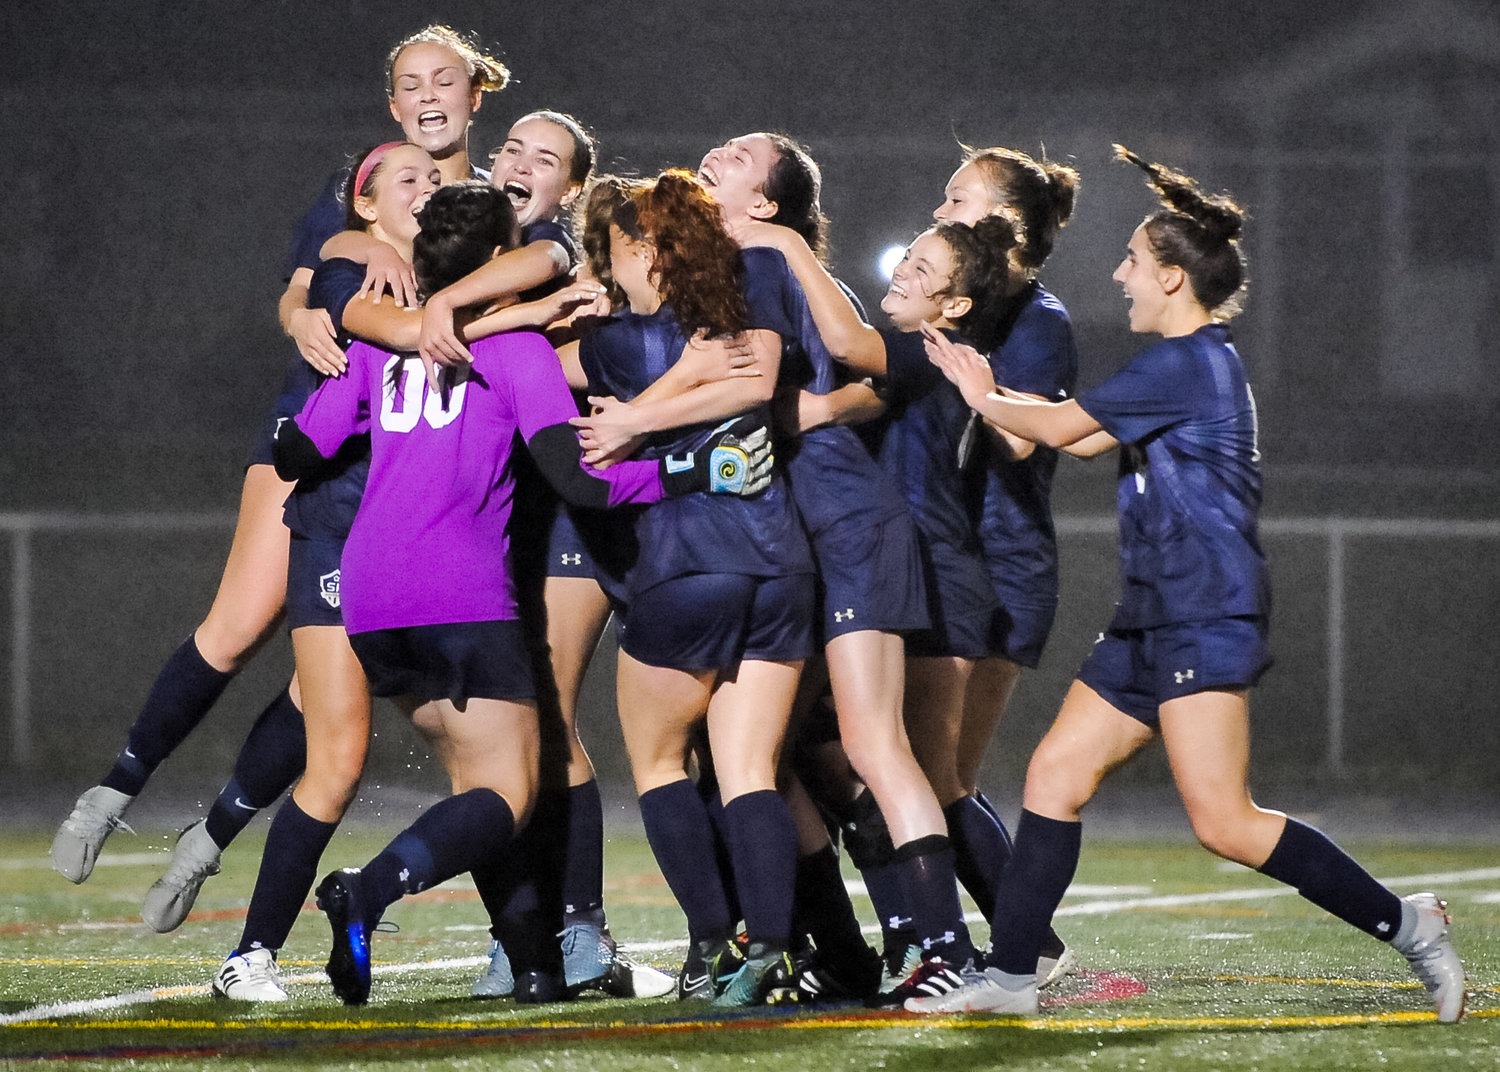 The Falcons celebrated the winning penalty that put them past Broadneck and into the state tournament. Severna Park (17-1) has 16 shutouts and will make its first state tournament appearance since 2011.